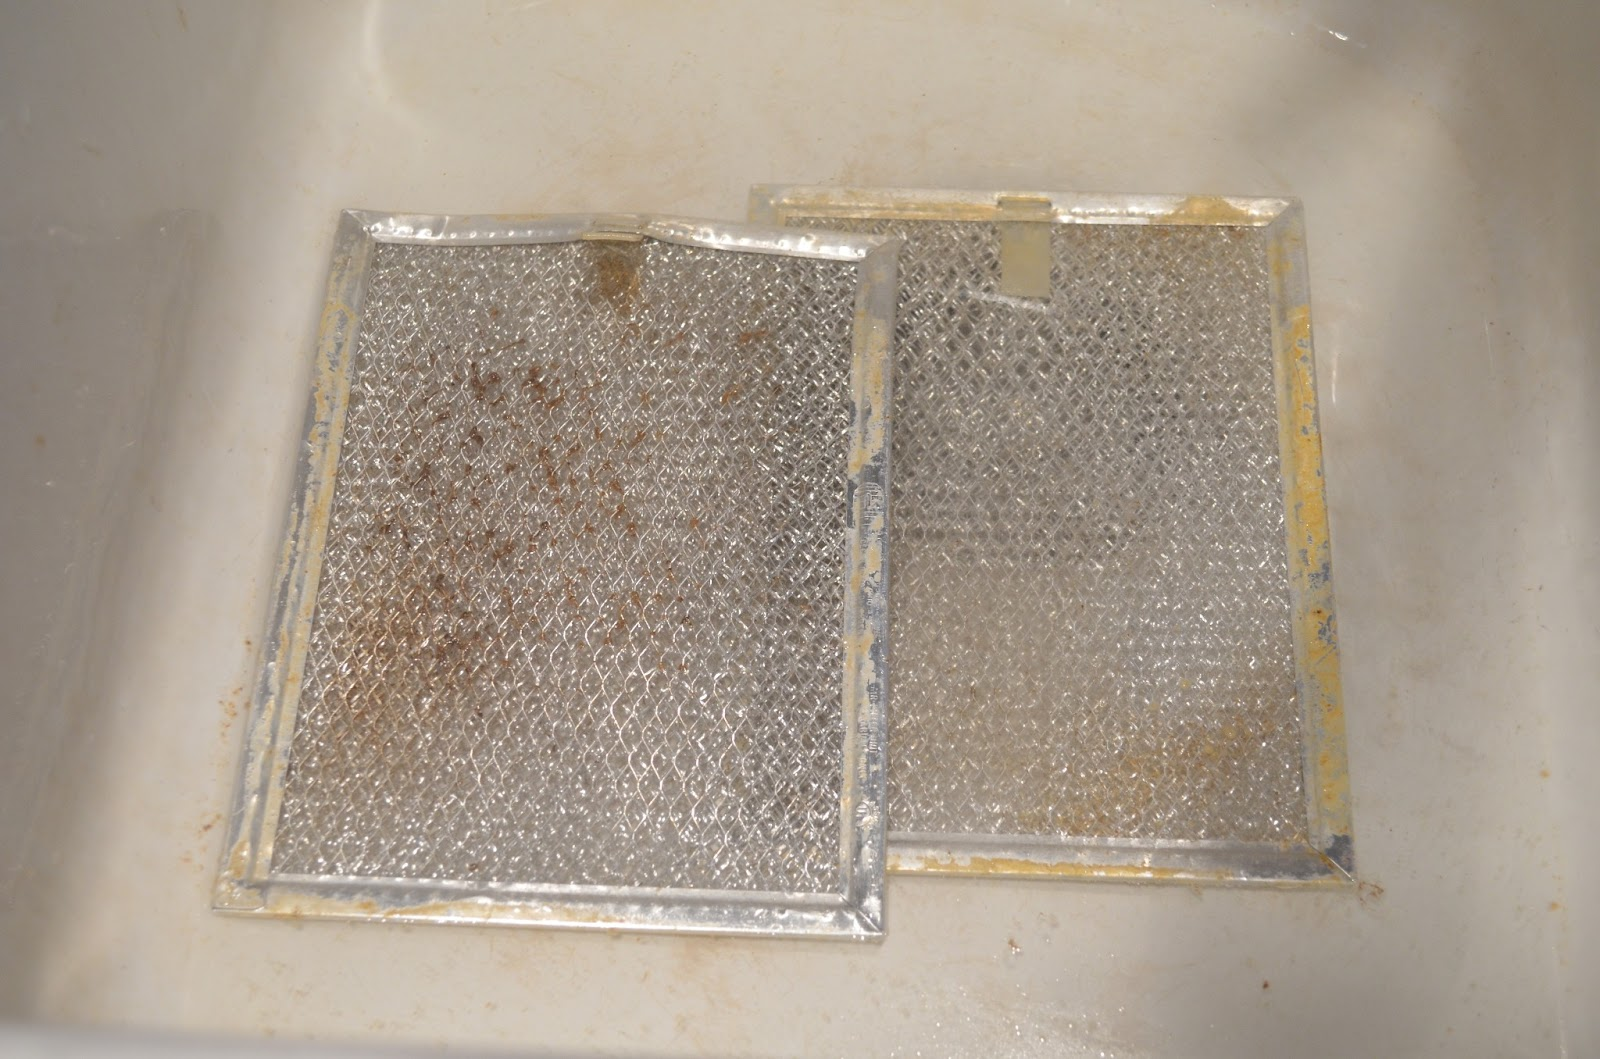 Stover-Top-Hood-Vent-Filter-Cleaning-101-Swish.jpg